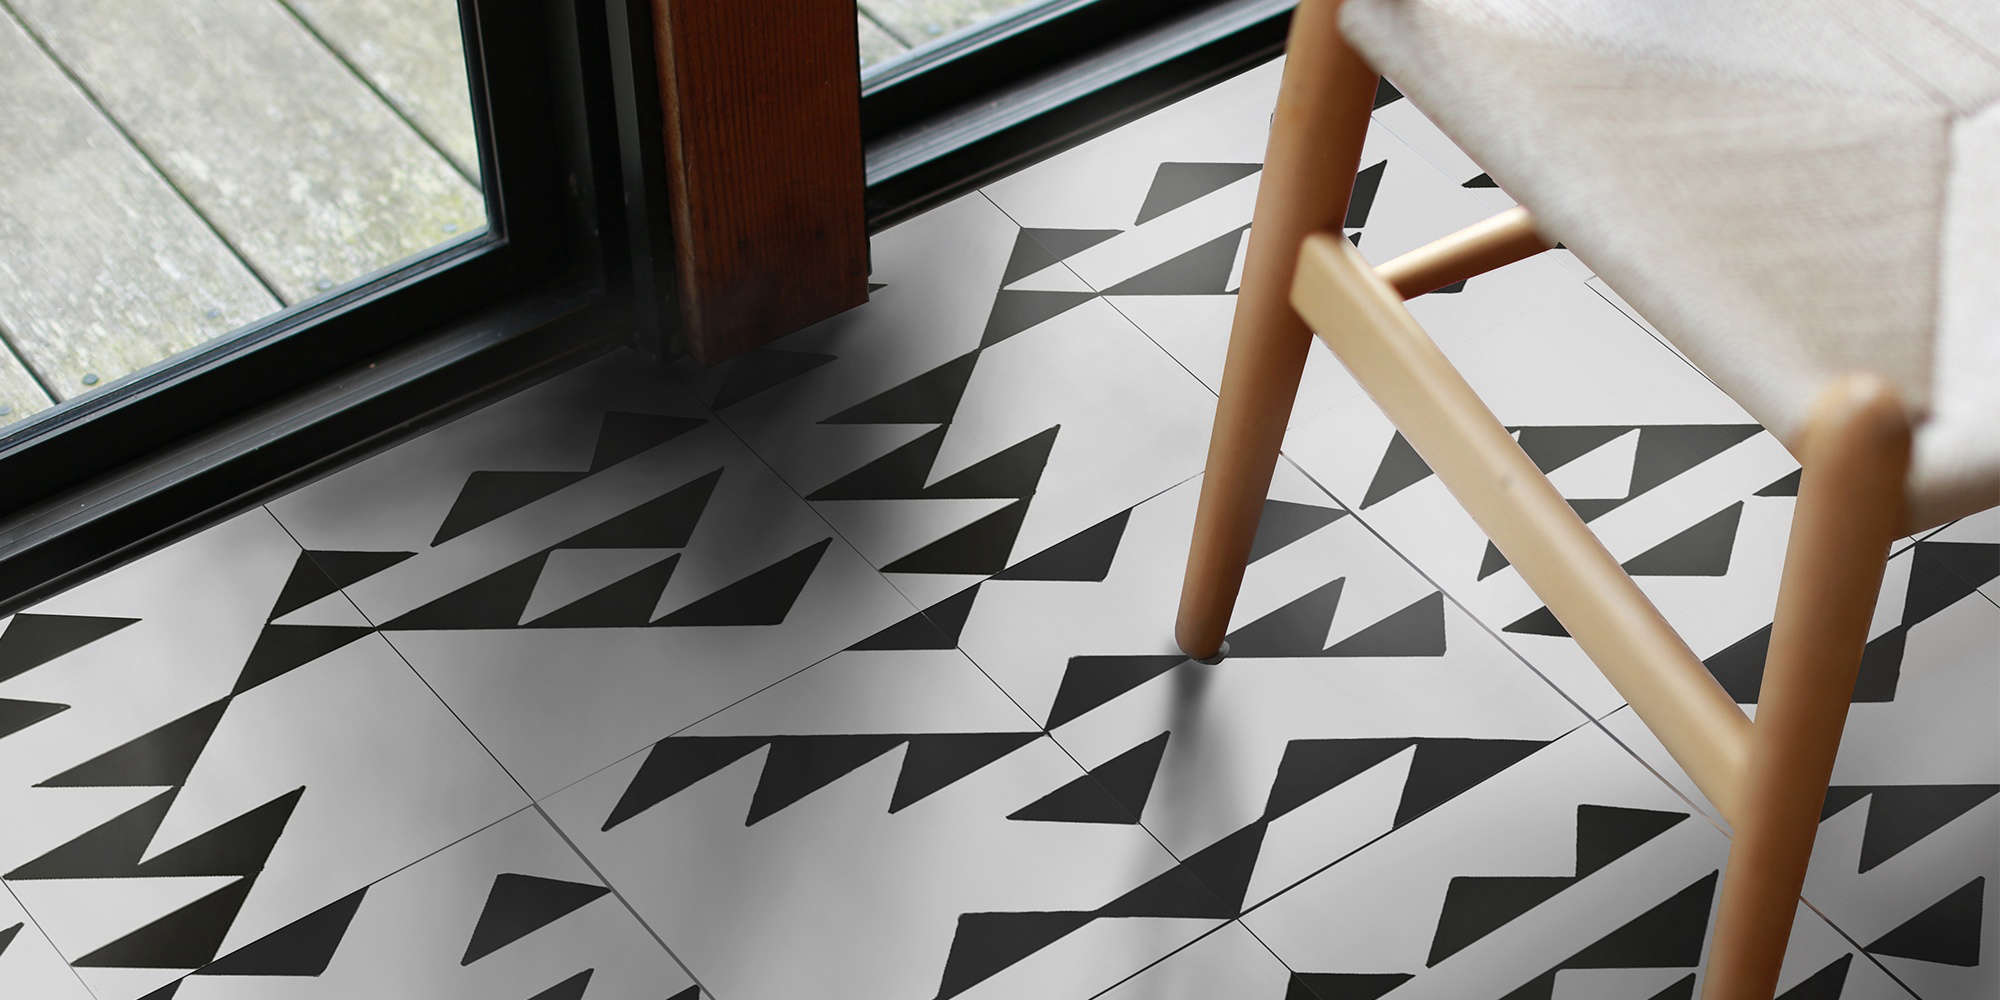 The New Artist Cement Collection from Cle Tiles alt for living cle tile remodelista